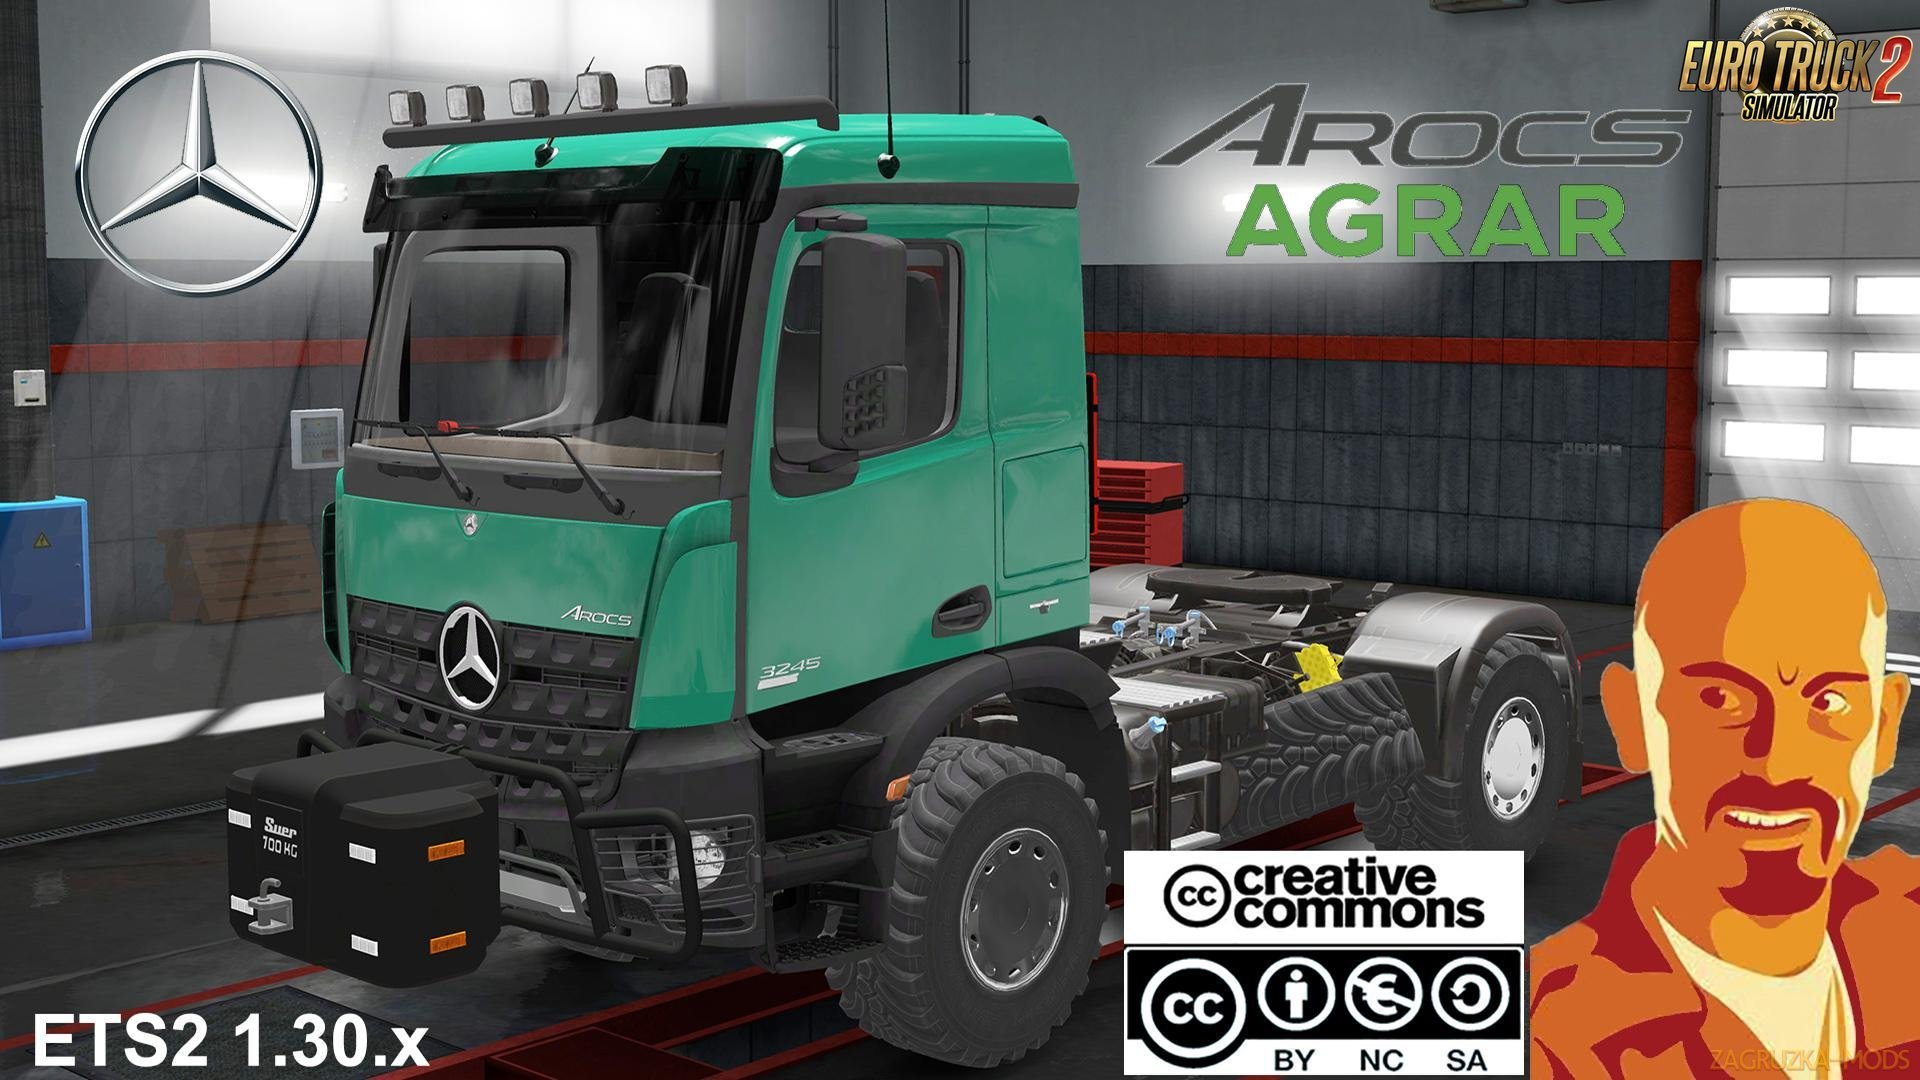 Mercedes Benz Arocs AGRAR v1.0 by CyrusTheVirus (1.31.x) for ETS 2